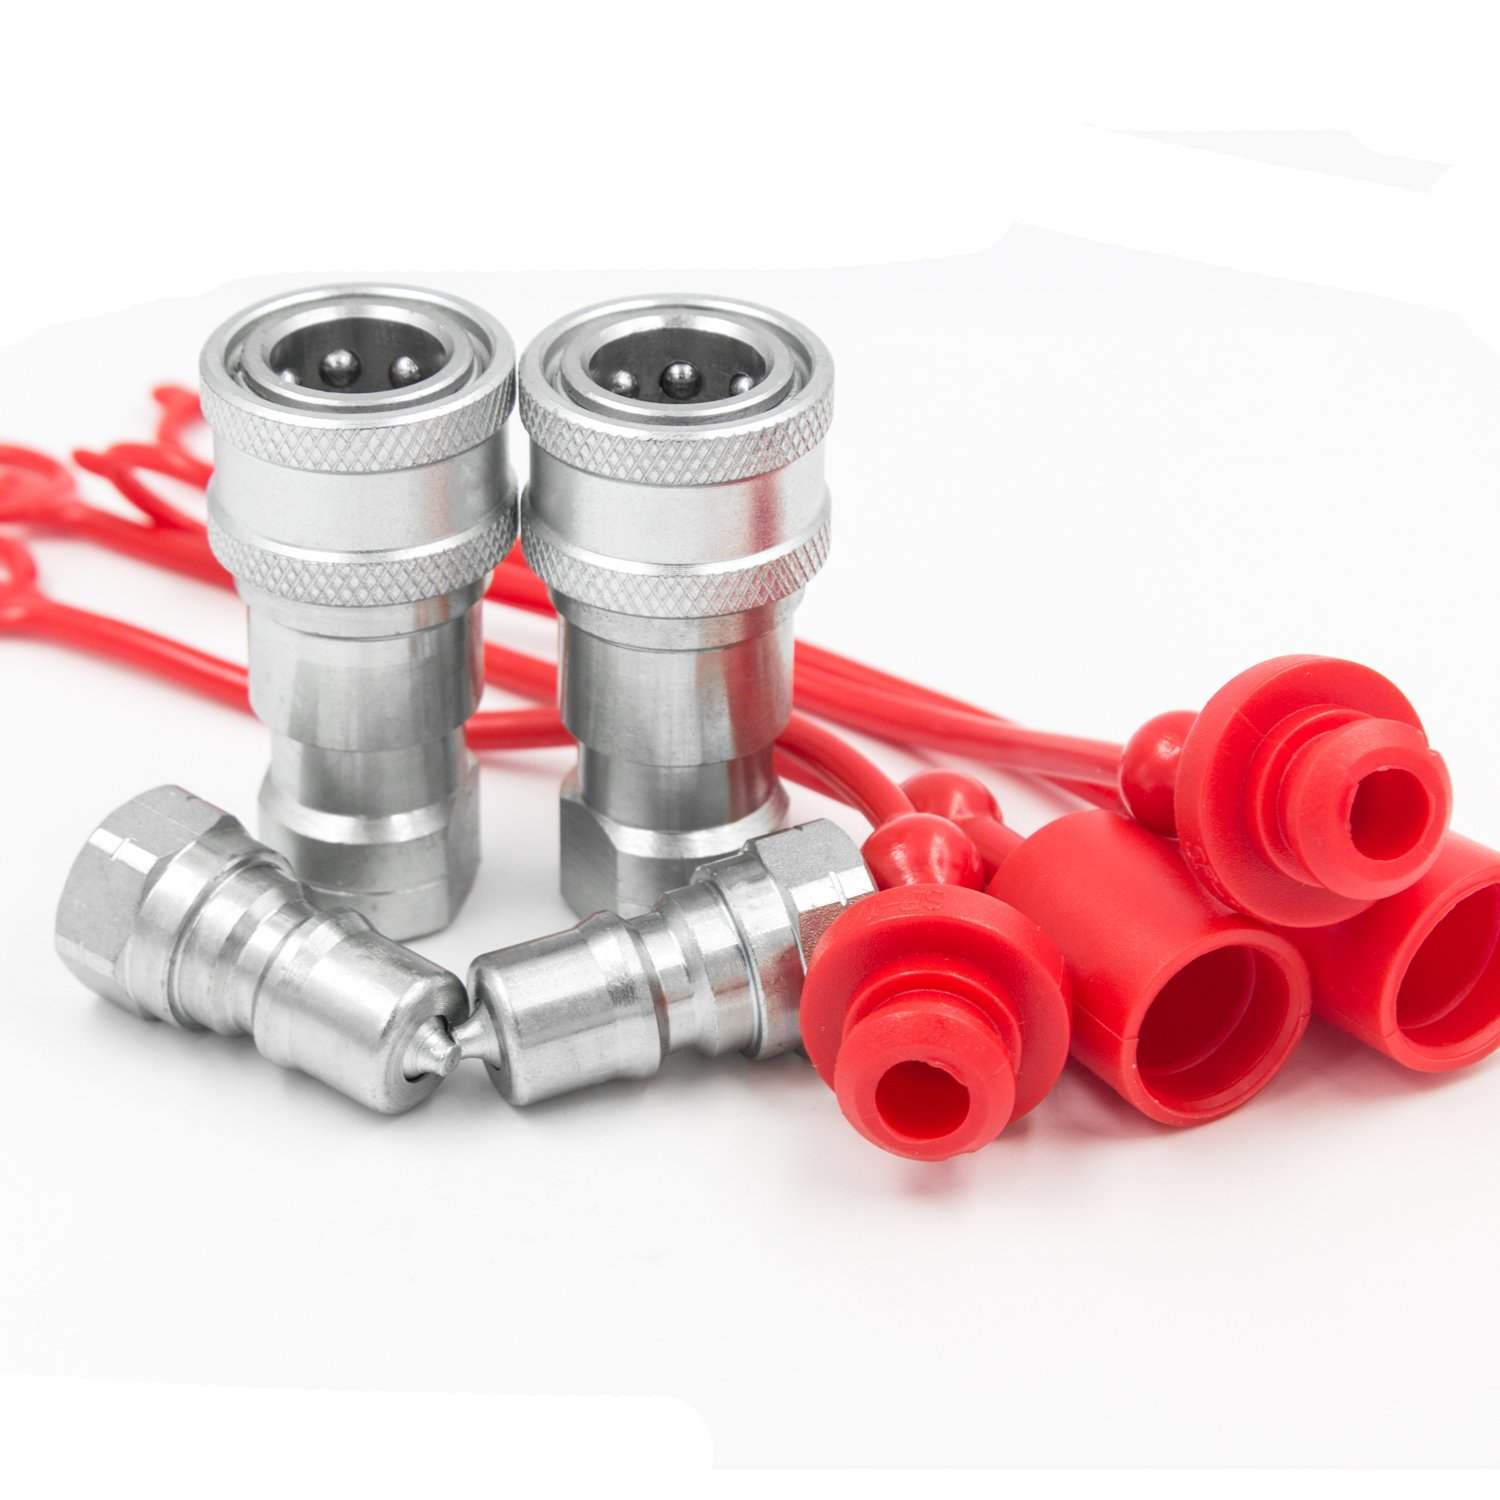 2 Sets 1/4'' NPT Thread ISO-B Hydraulic Quick Disconnect Coupler Tractor Quick Coupling with Dust Caps